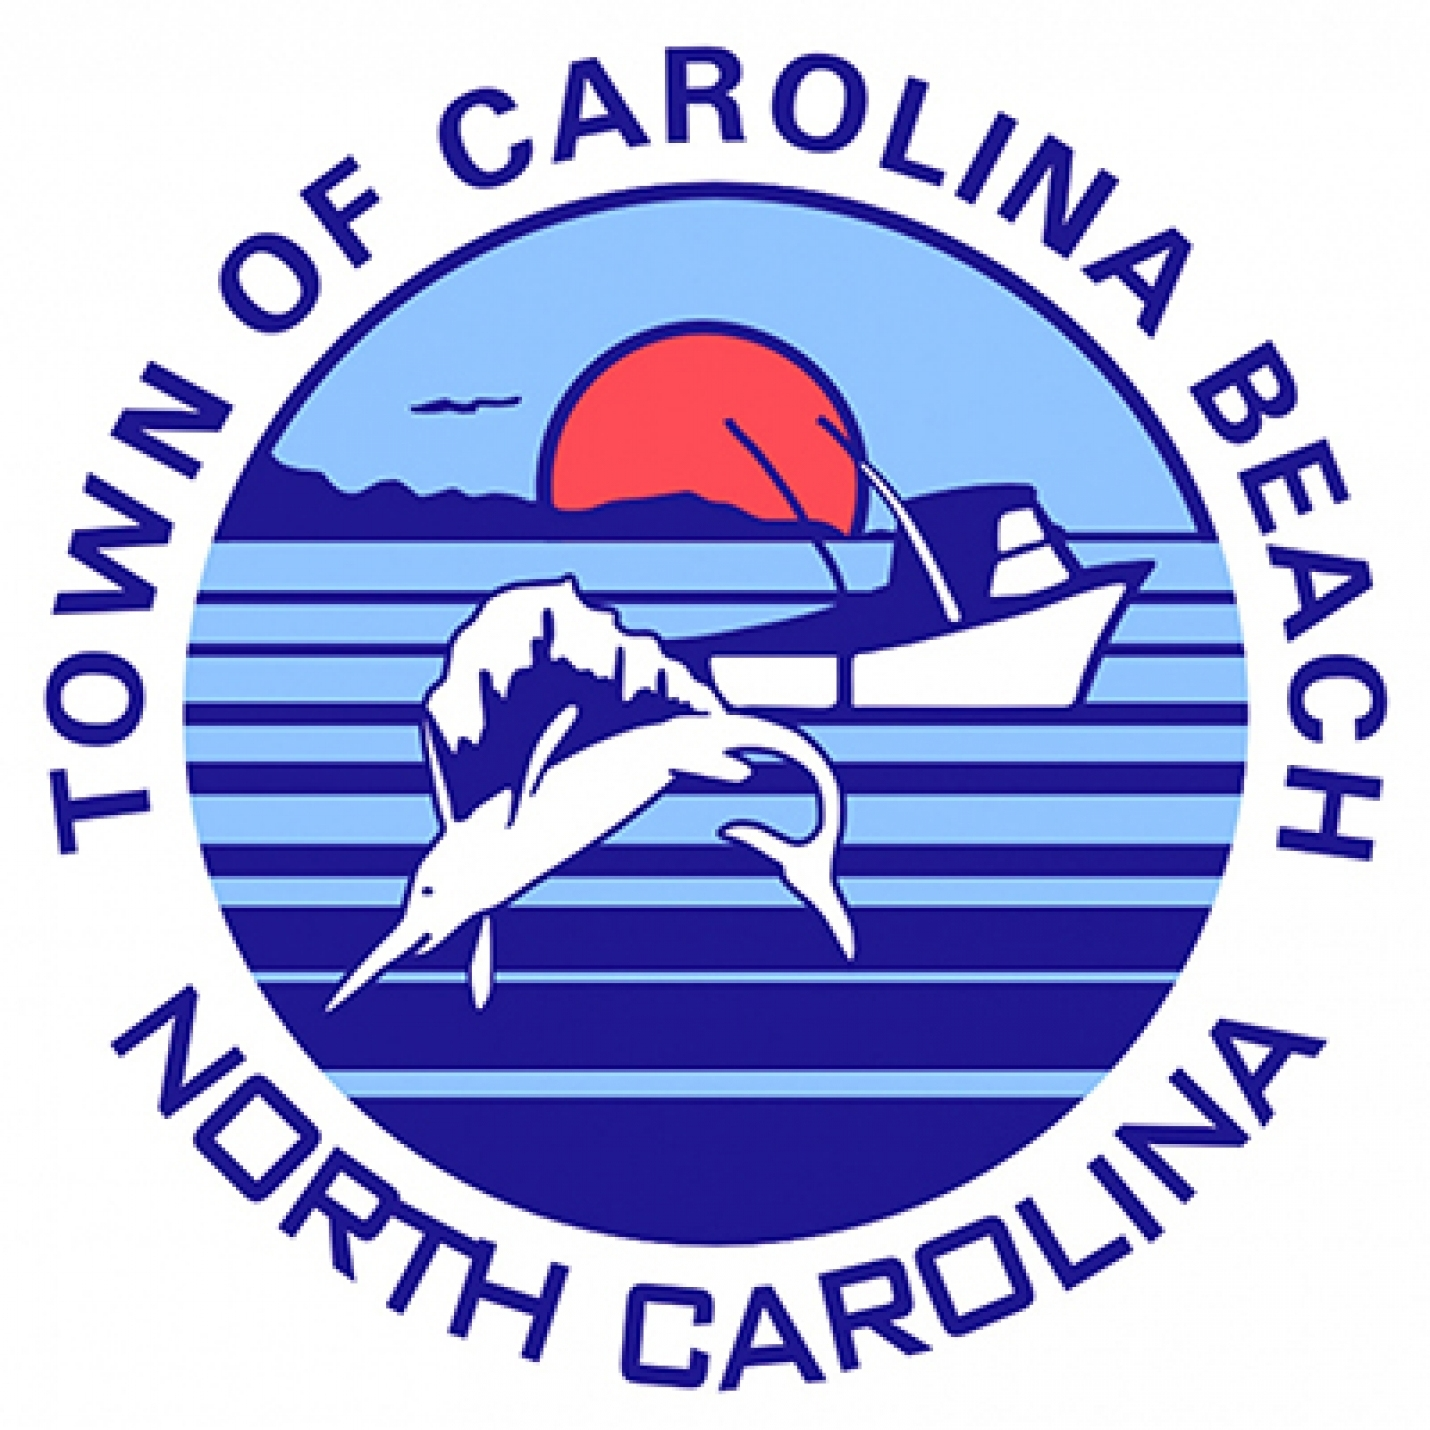 Carolina Beach To Hold Land Use Plan Open House Feb. 6th